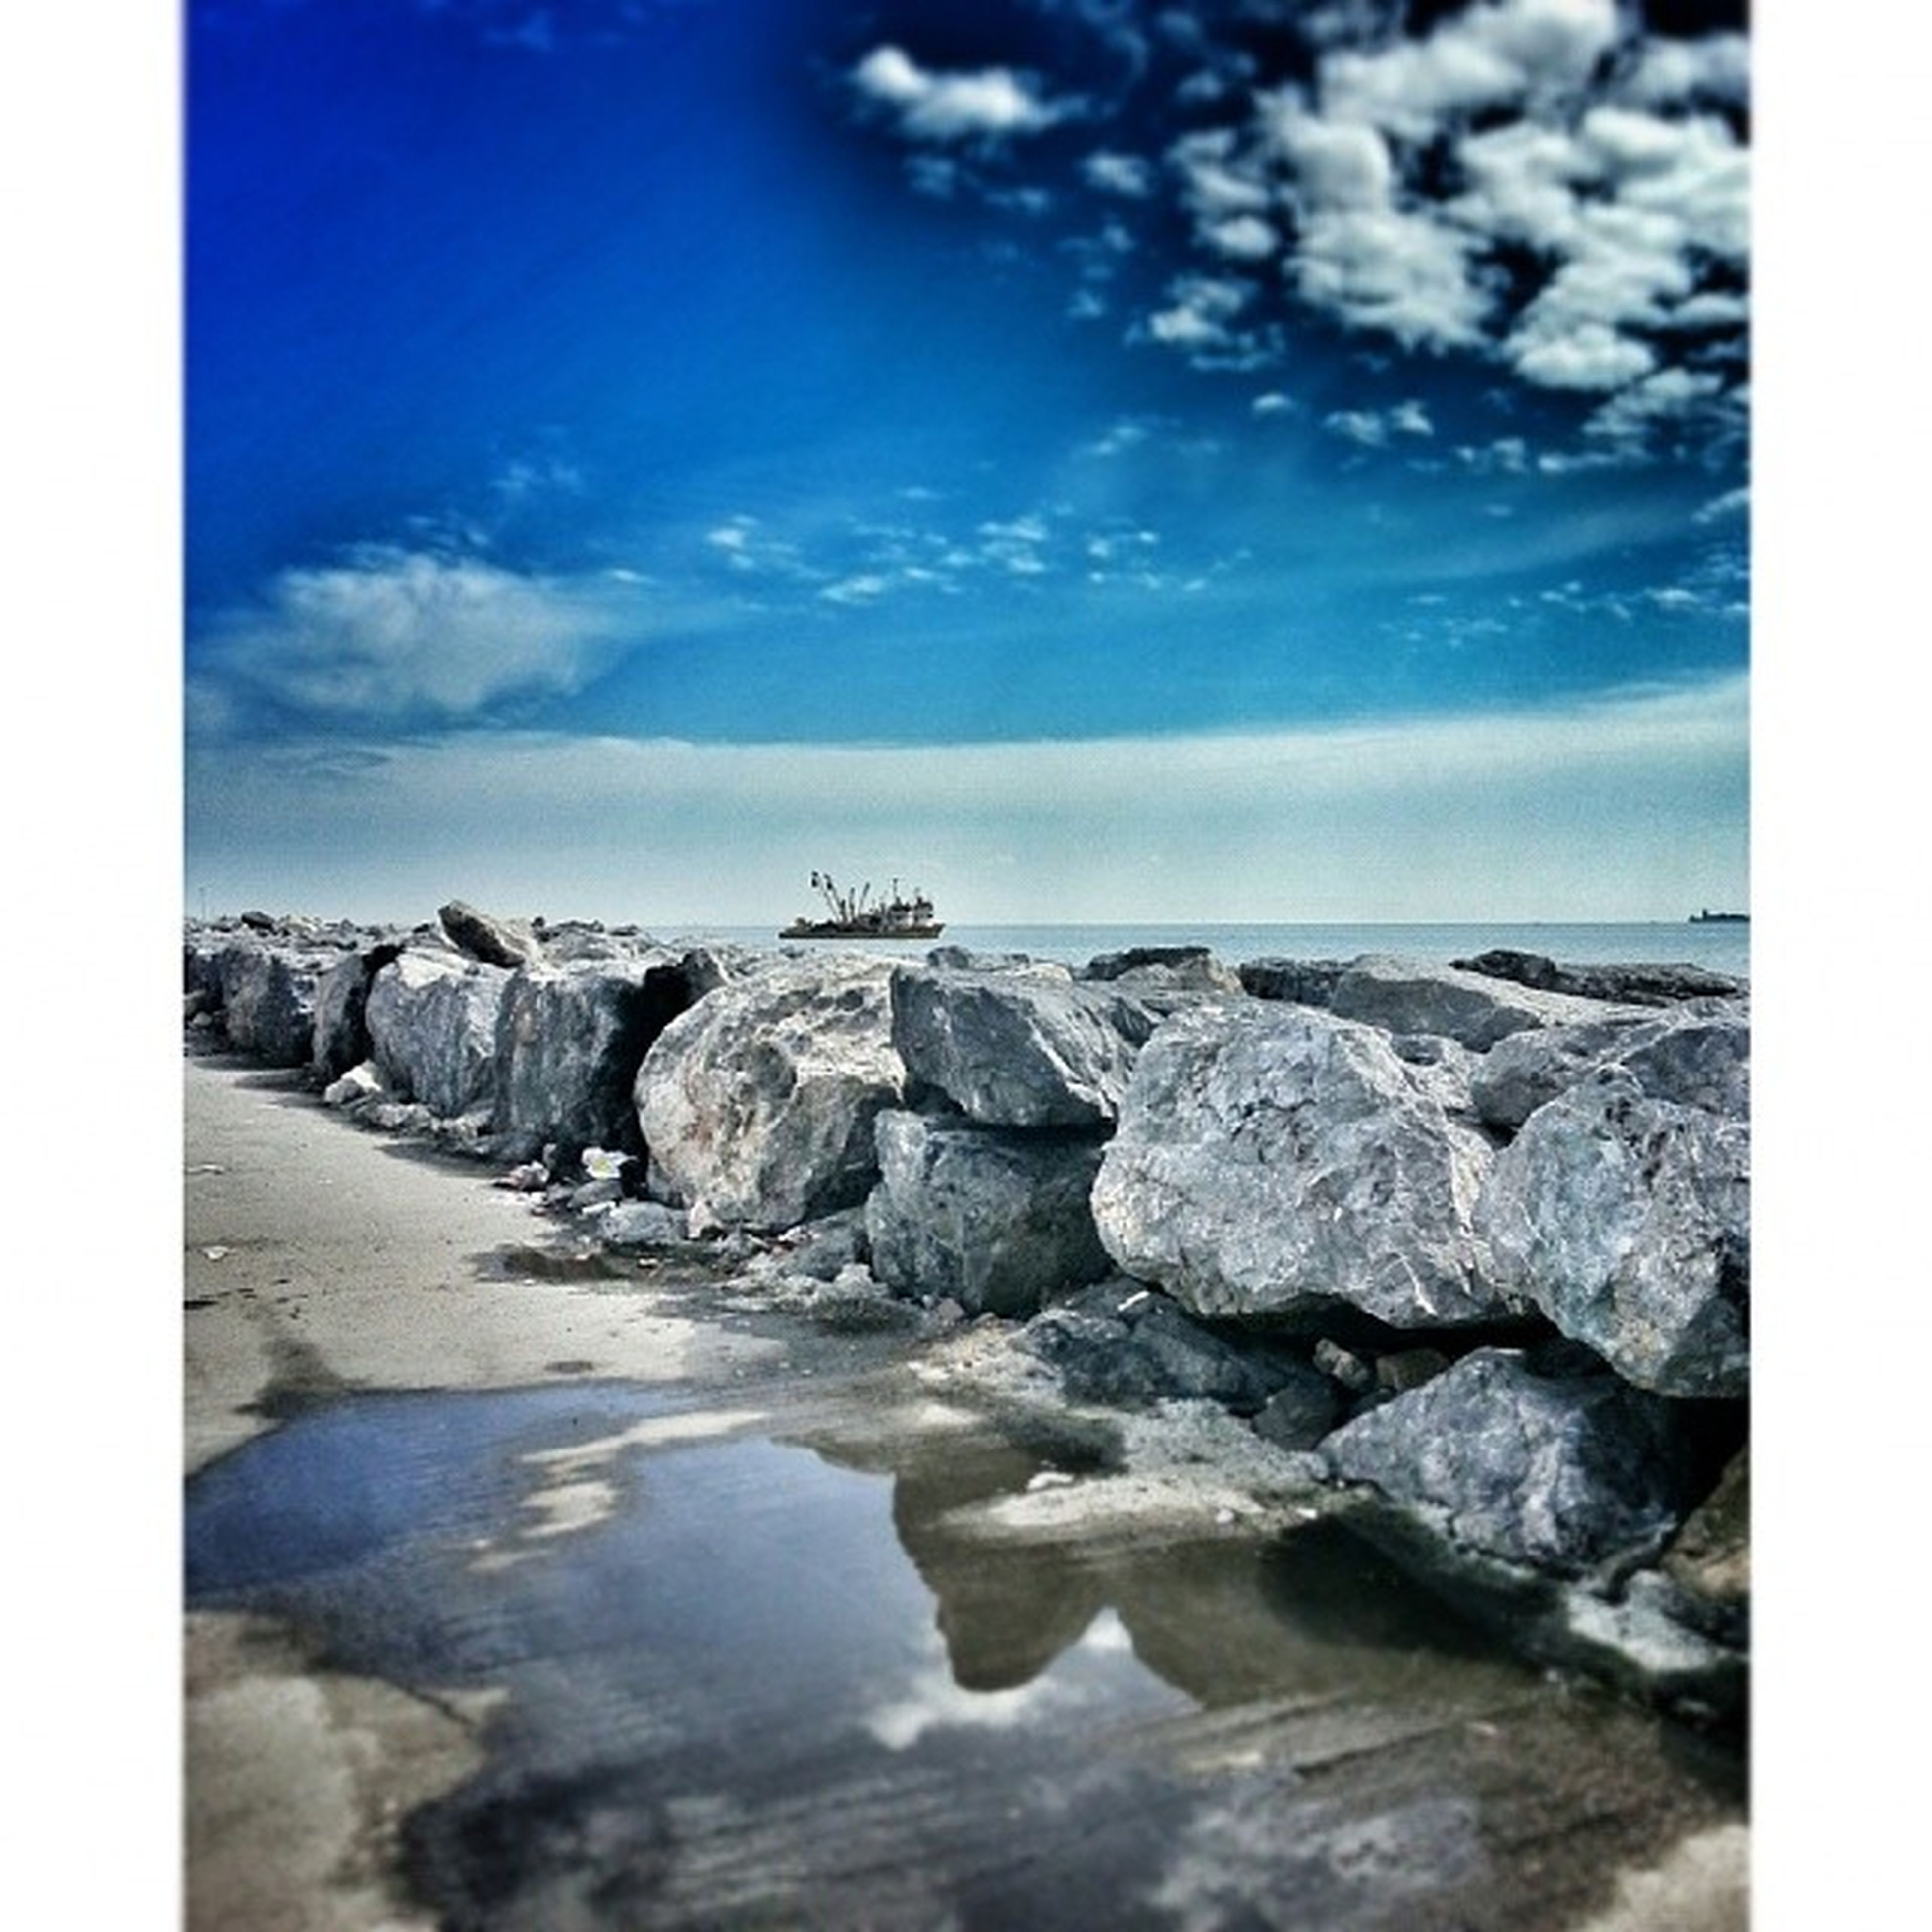 water, sea, transfer print, tranquil scene, sky, tranquility, scenics, rock - object, beauty in nature, beach, auto post production filter, rock, nature, rock formation, horizon over water, shore, cloud - sky, idyllic, cloud, coastline